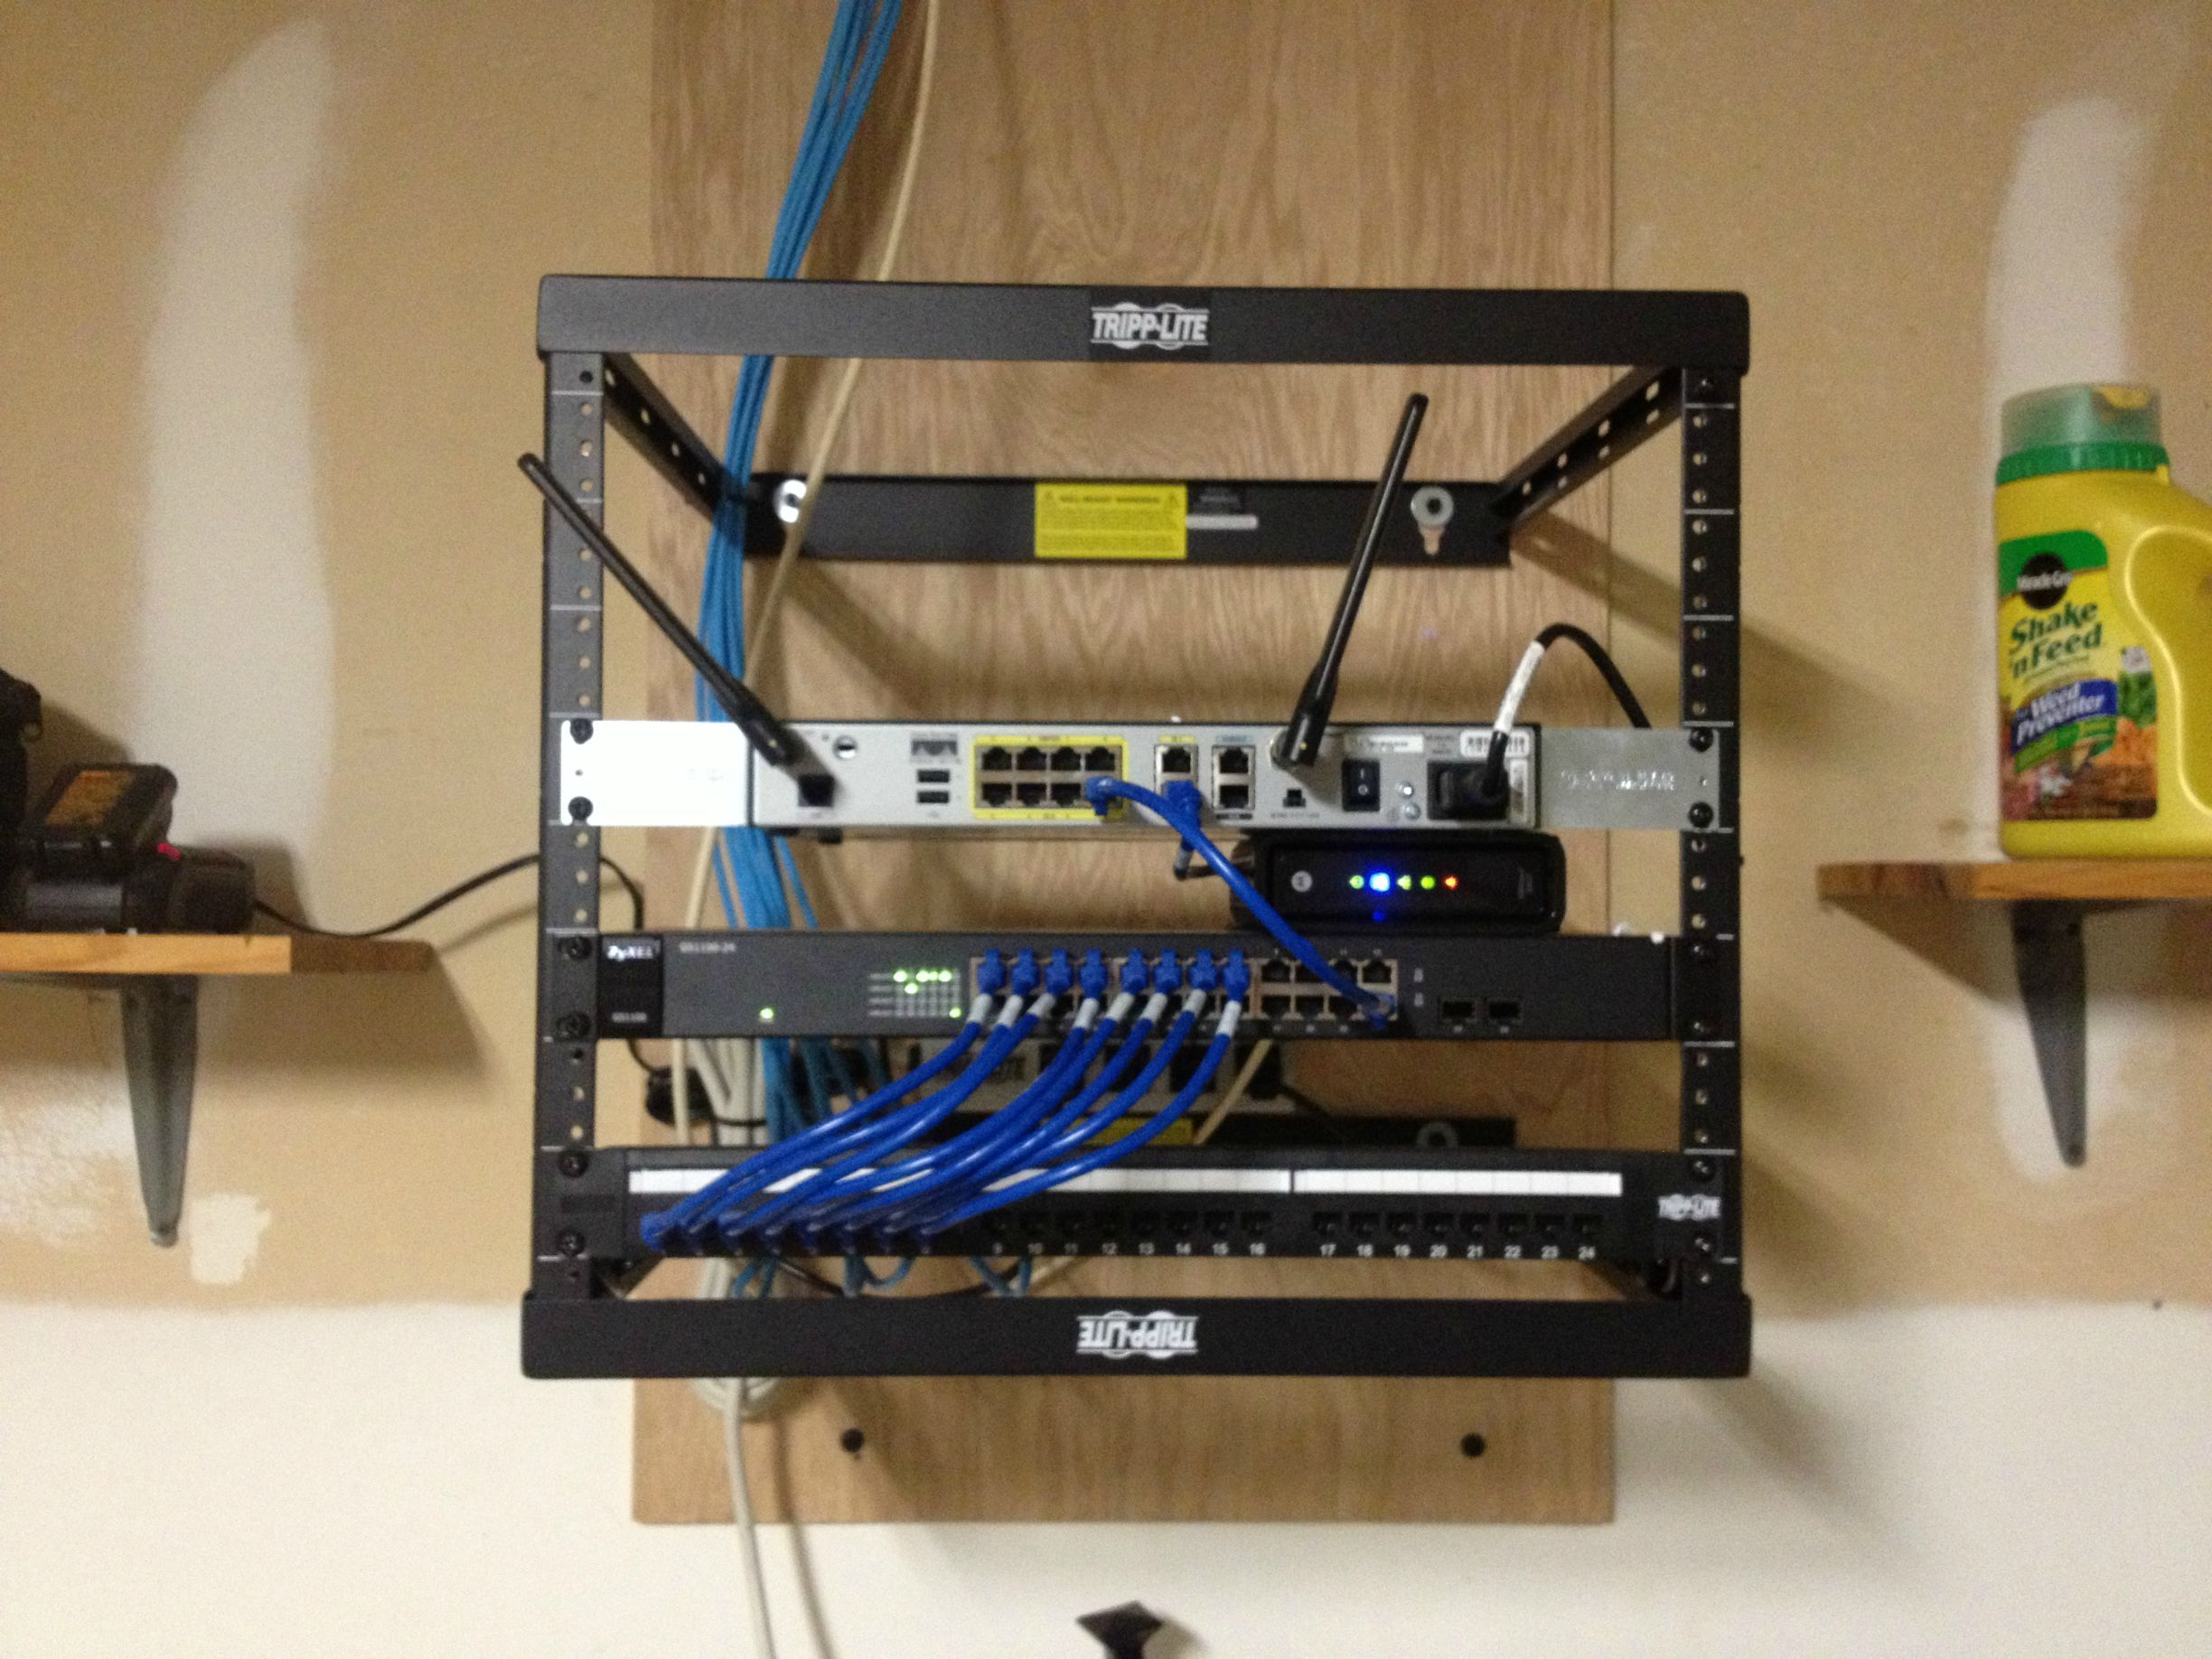 network wiring 3 way diagram power at light clean rack no smarter to do it mediacenter